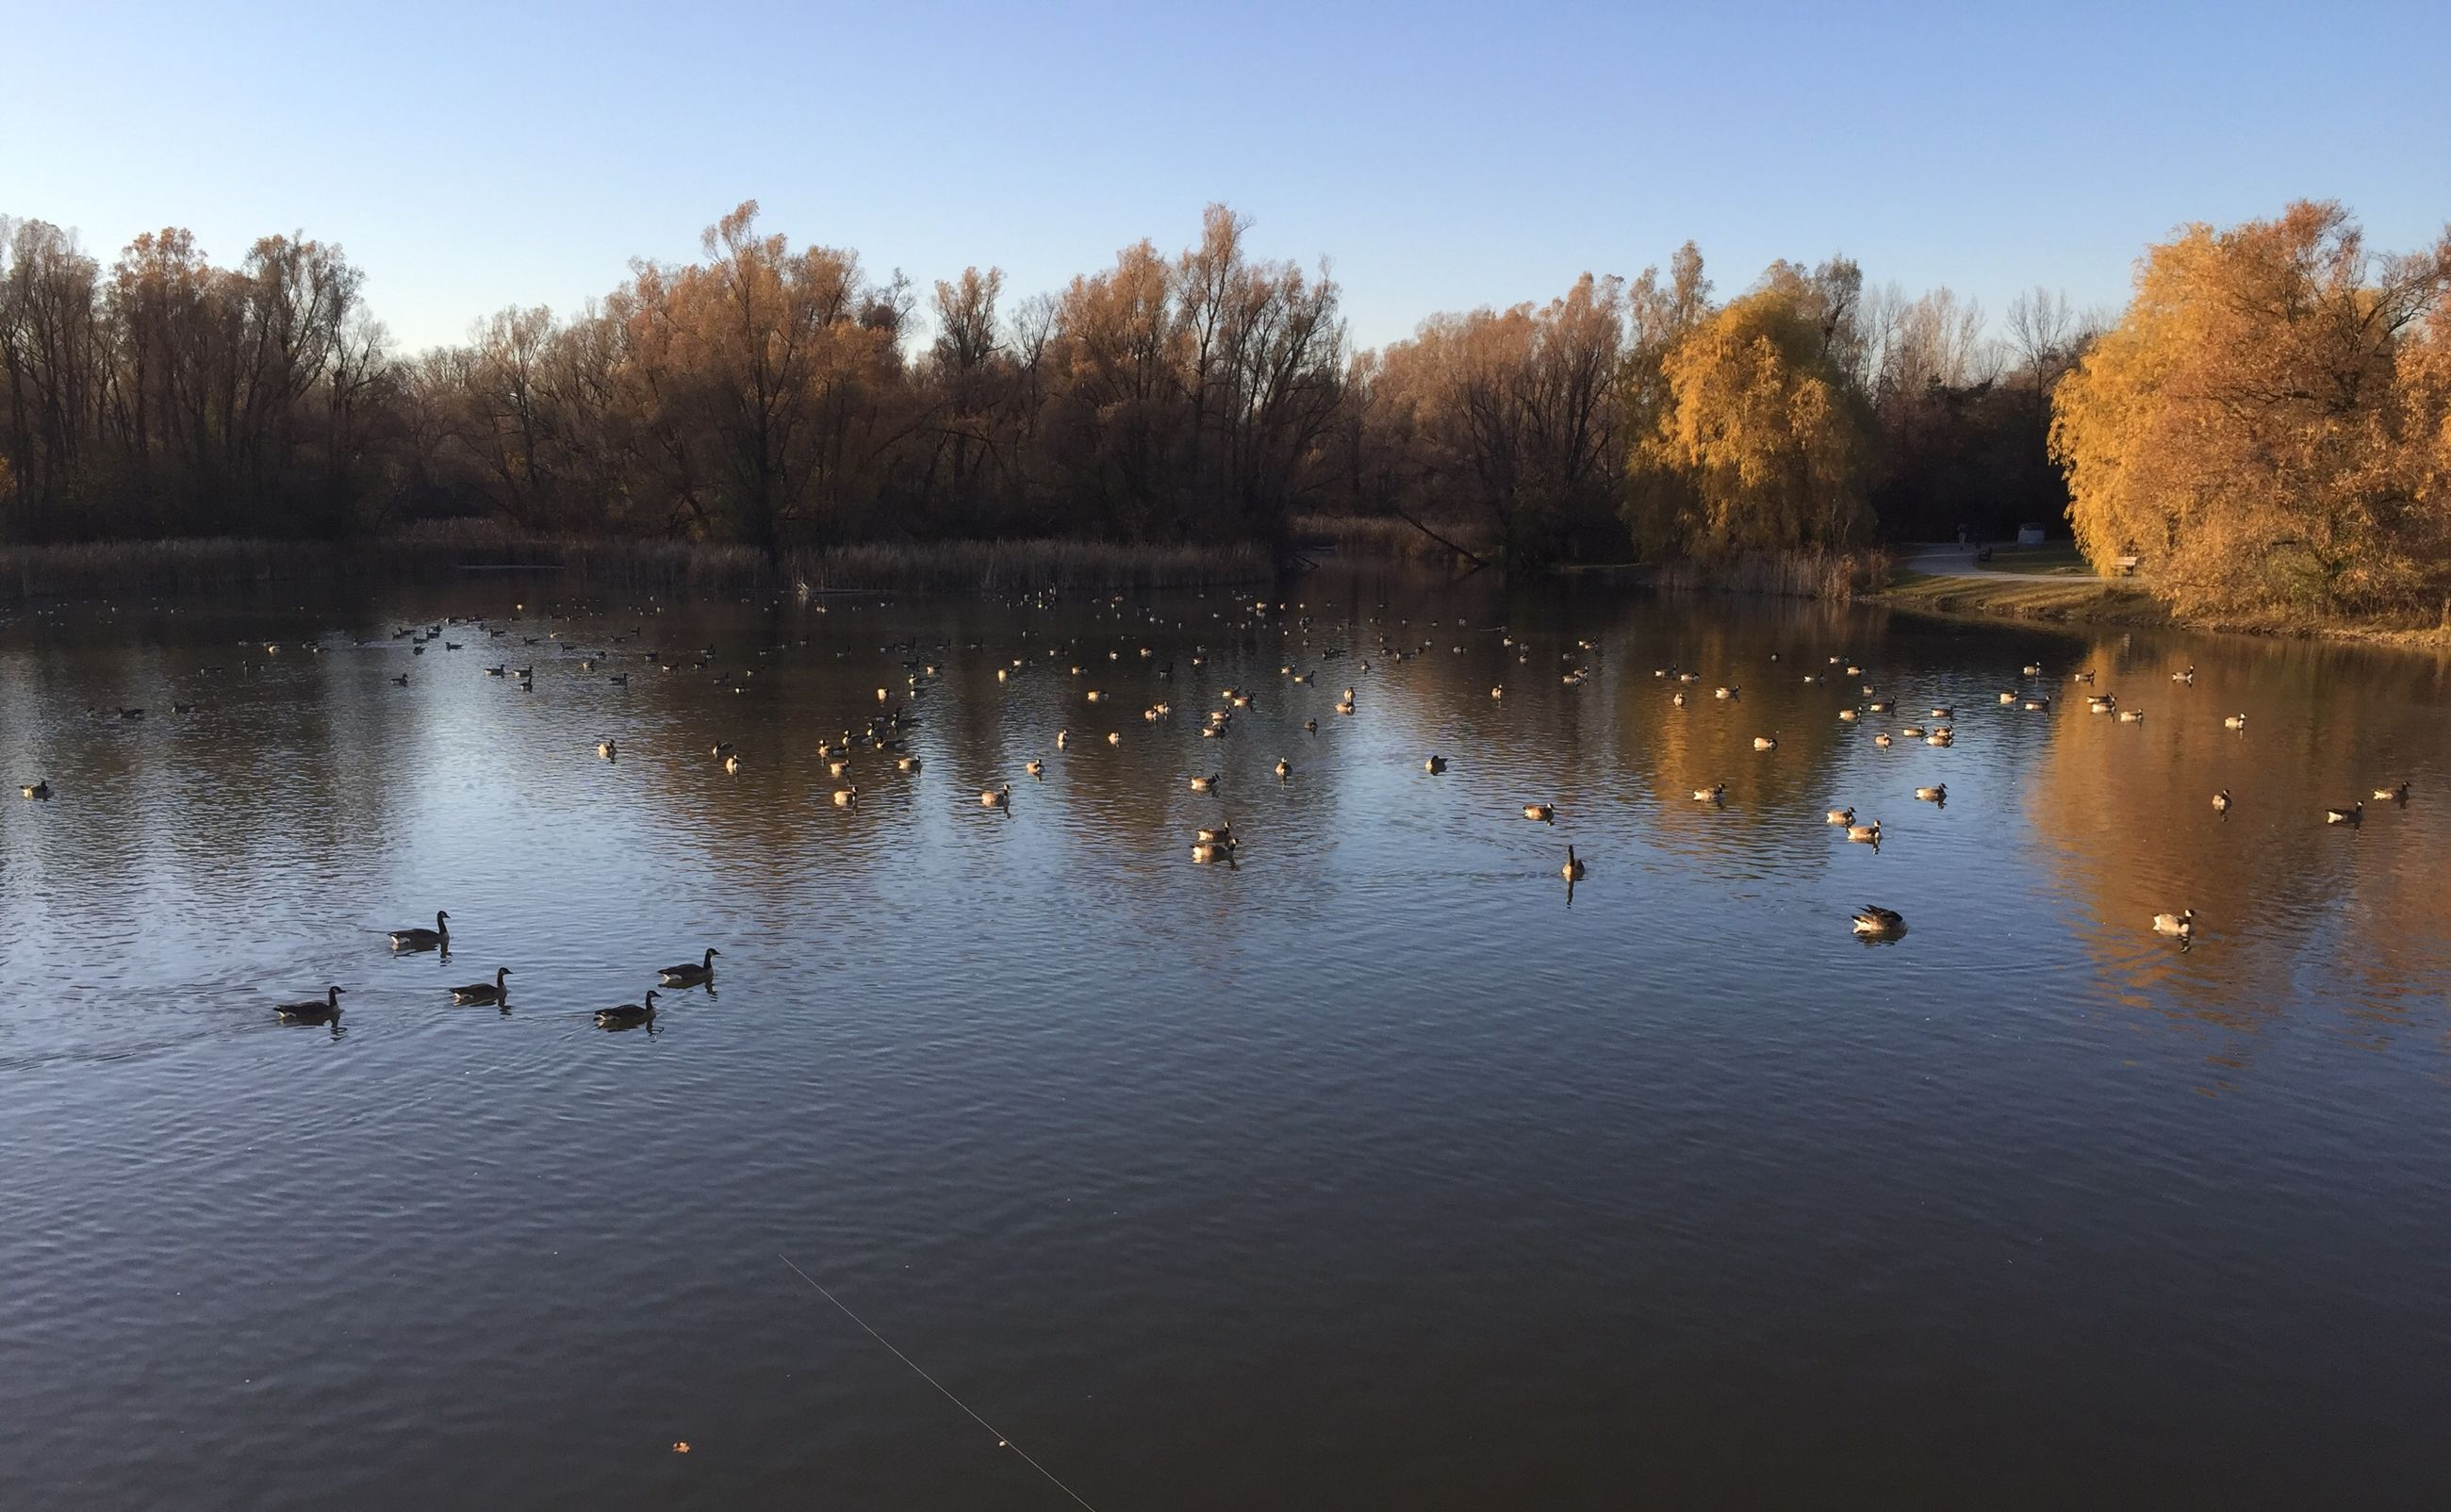 water, animal themes, bird, animals in the wild, wildlife, lake, reflection, tree, swimming, duck, waterfront, nature, beauty in nature, tranquil scene, tranquility, water bird, clear sky, scenics, flock of birds